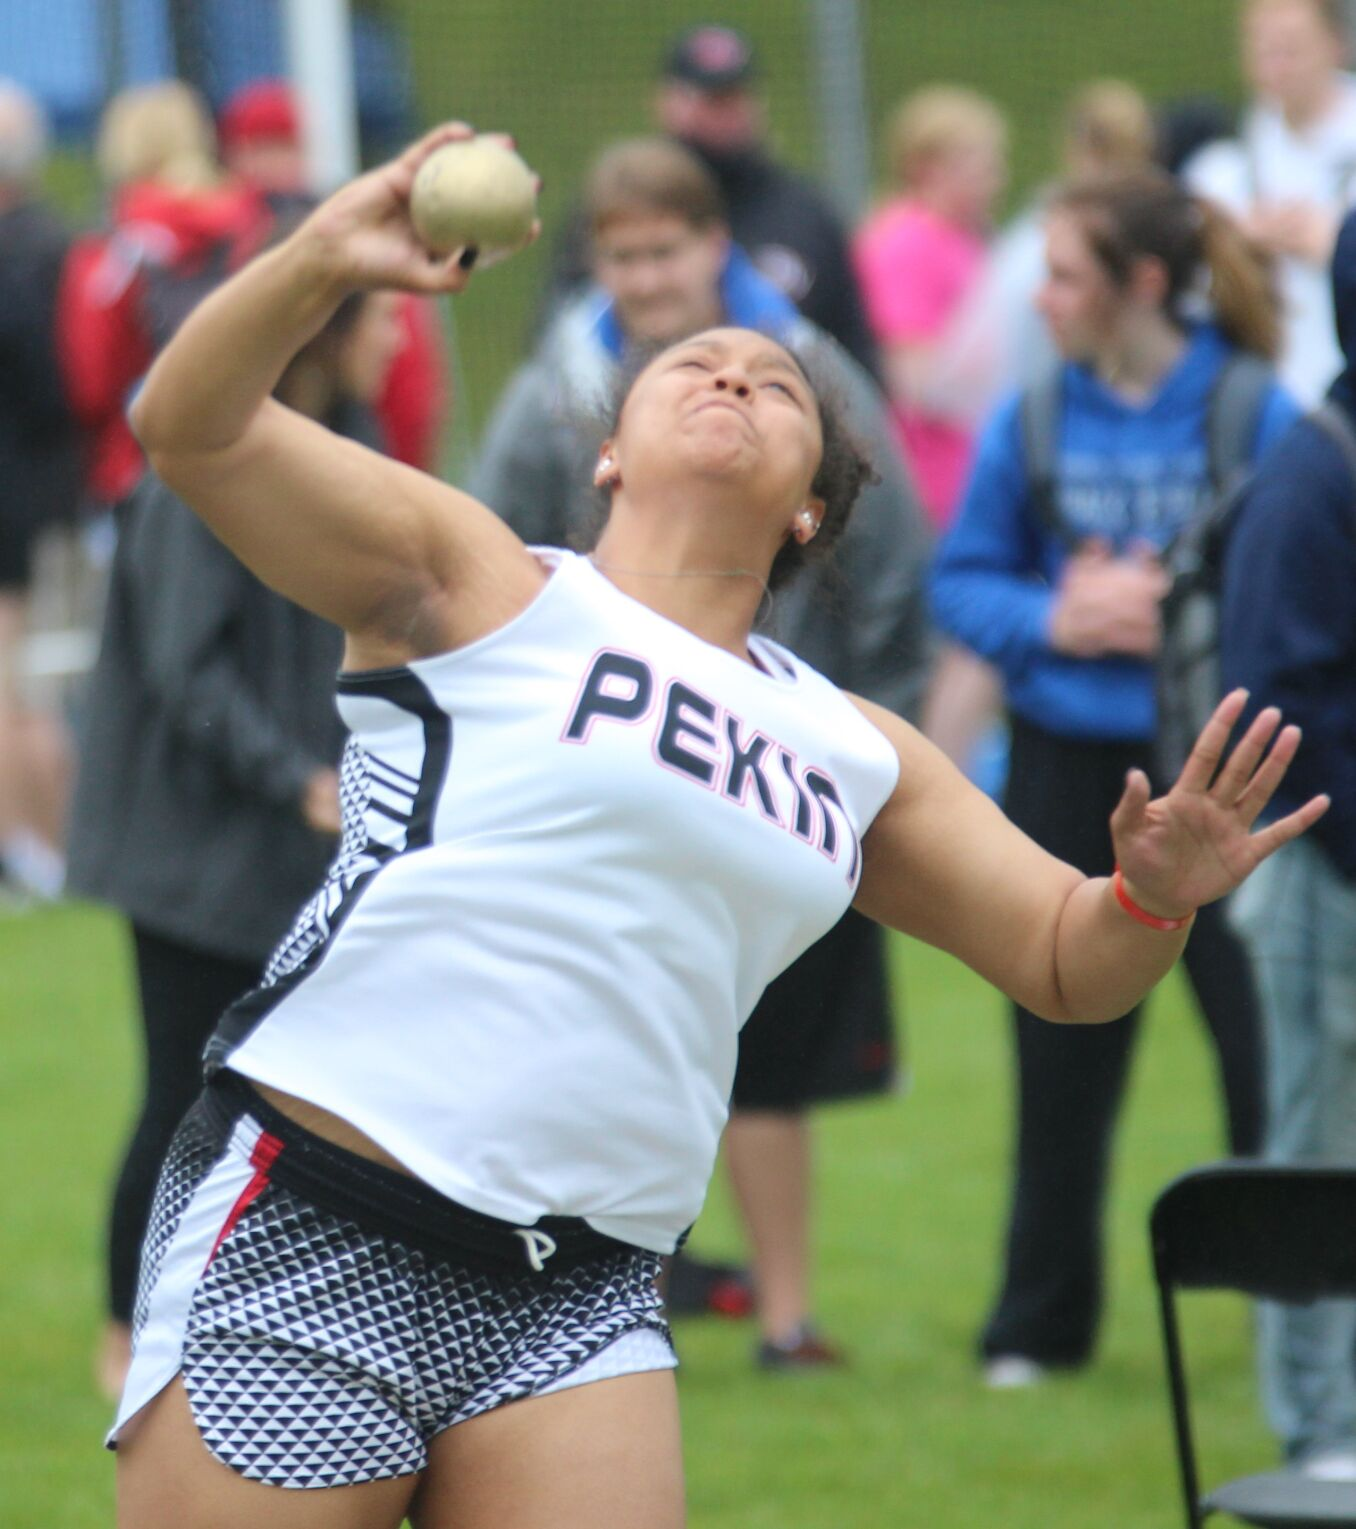 Pope places in top 10 at state